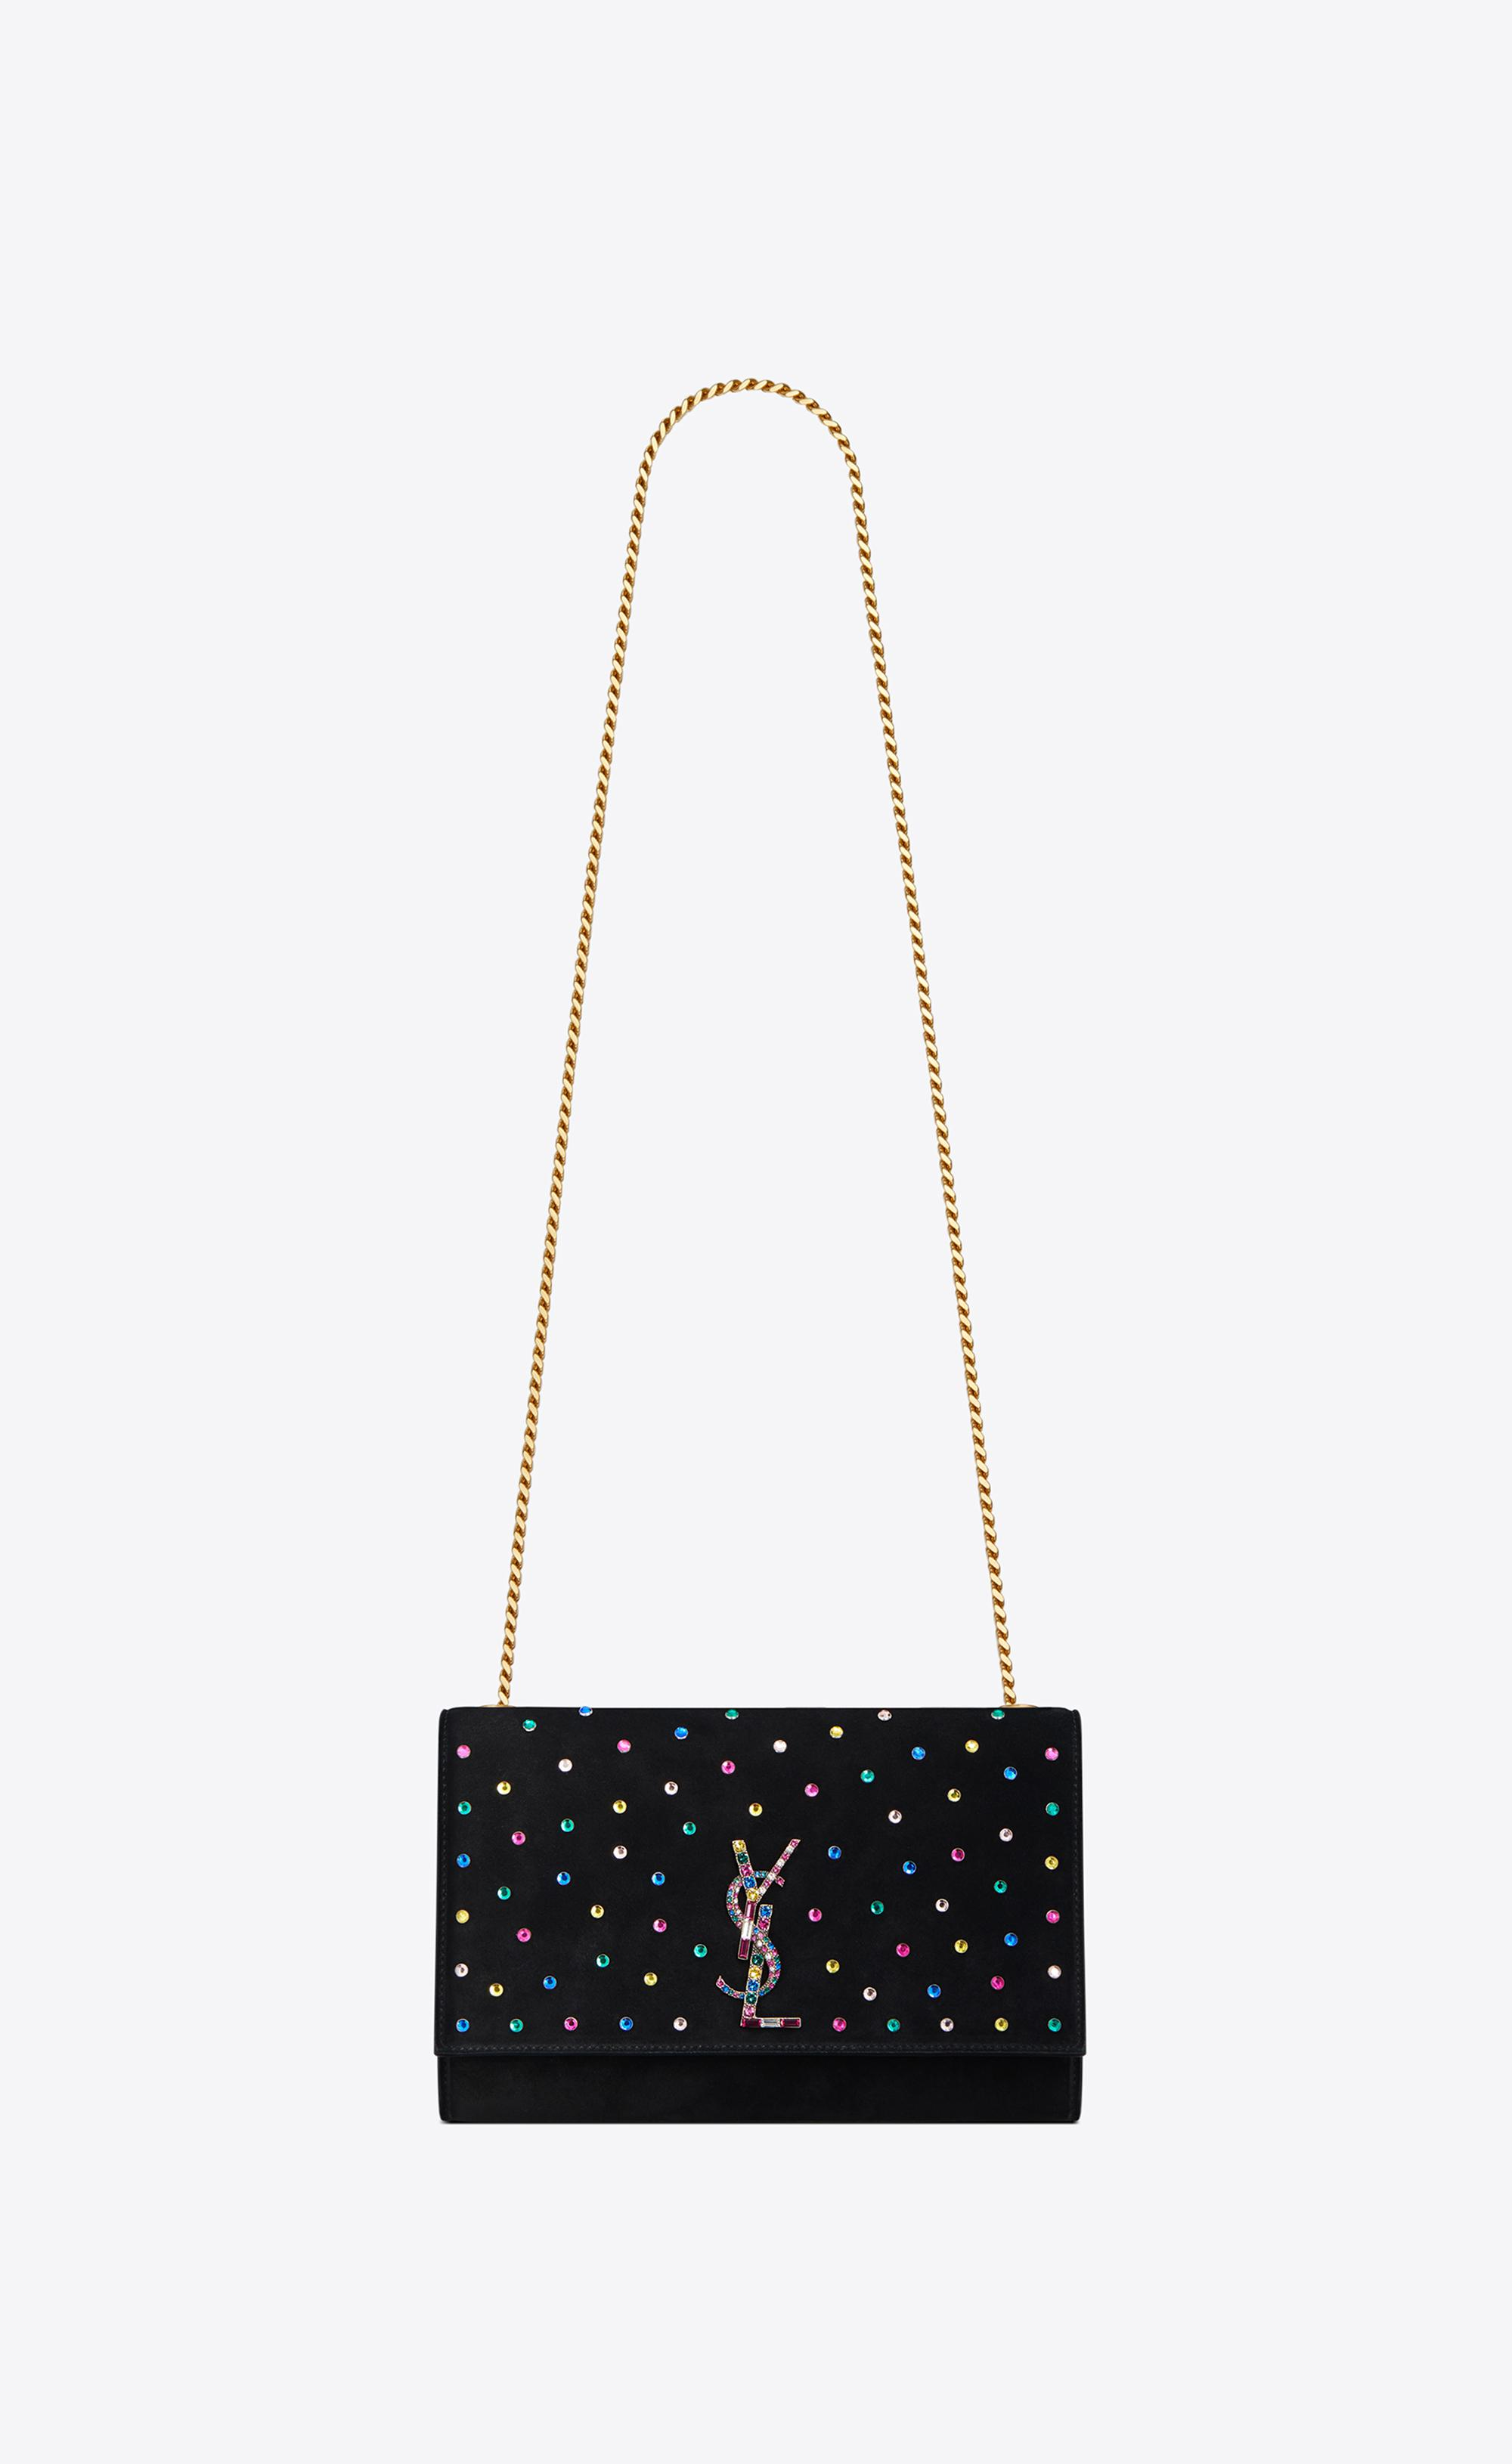 Saint Laurent - Medium Kate Chain Bag In Black Suede And Multicolored  Crystals - Lyst b9ded978492ff